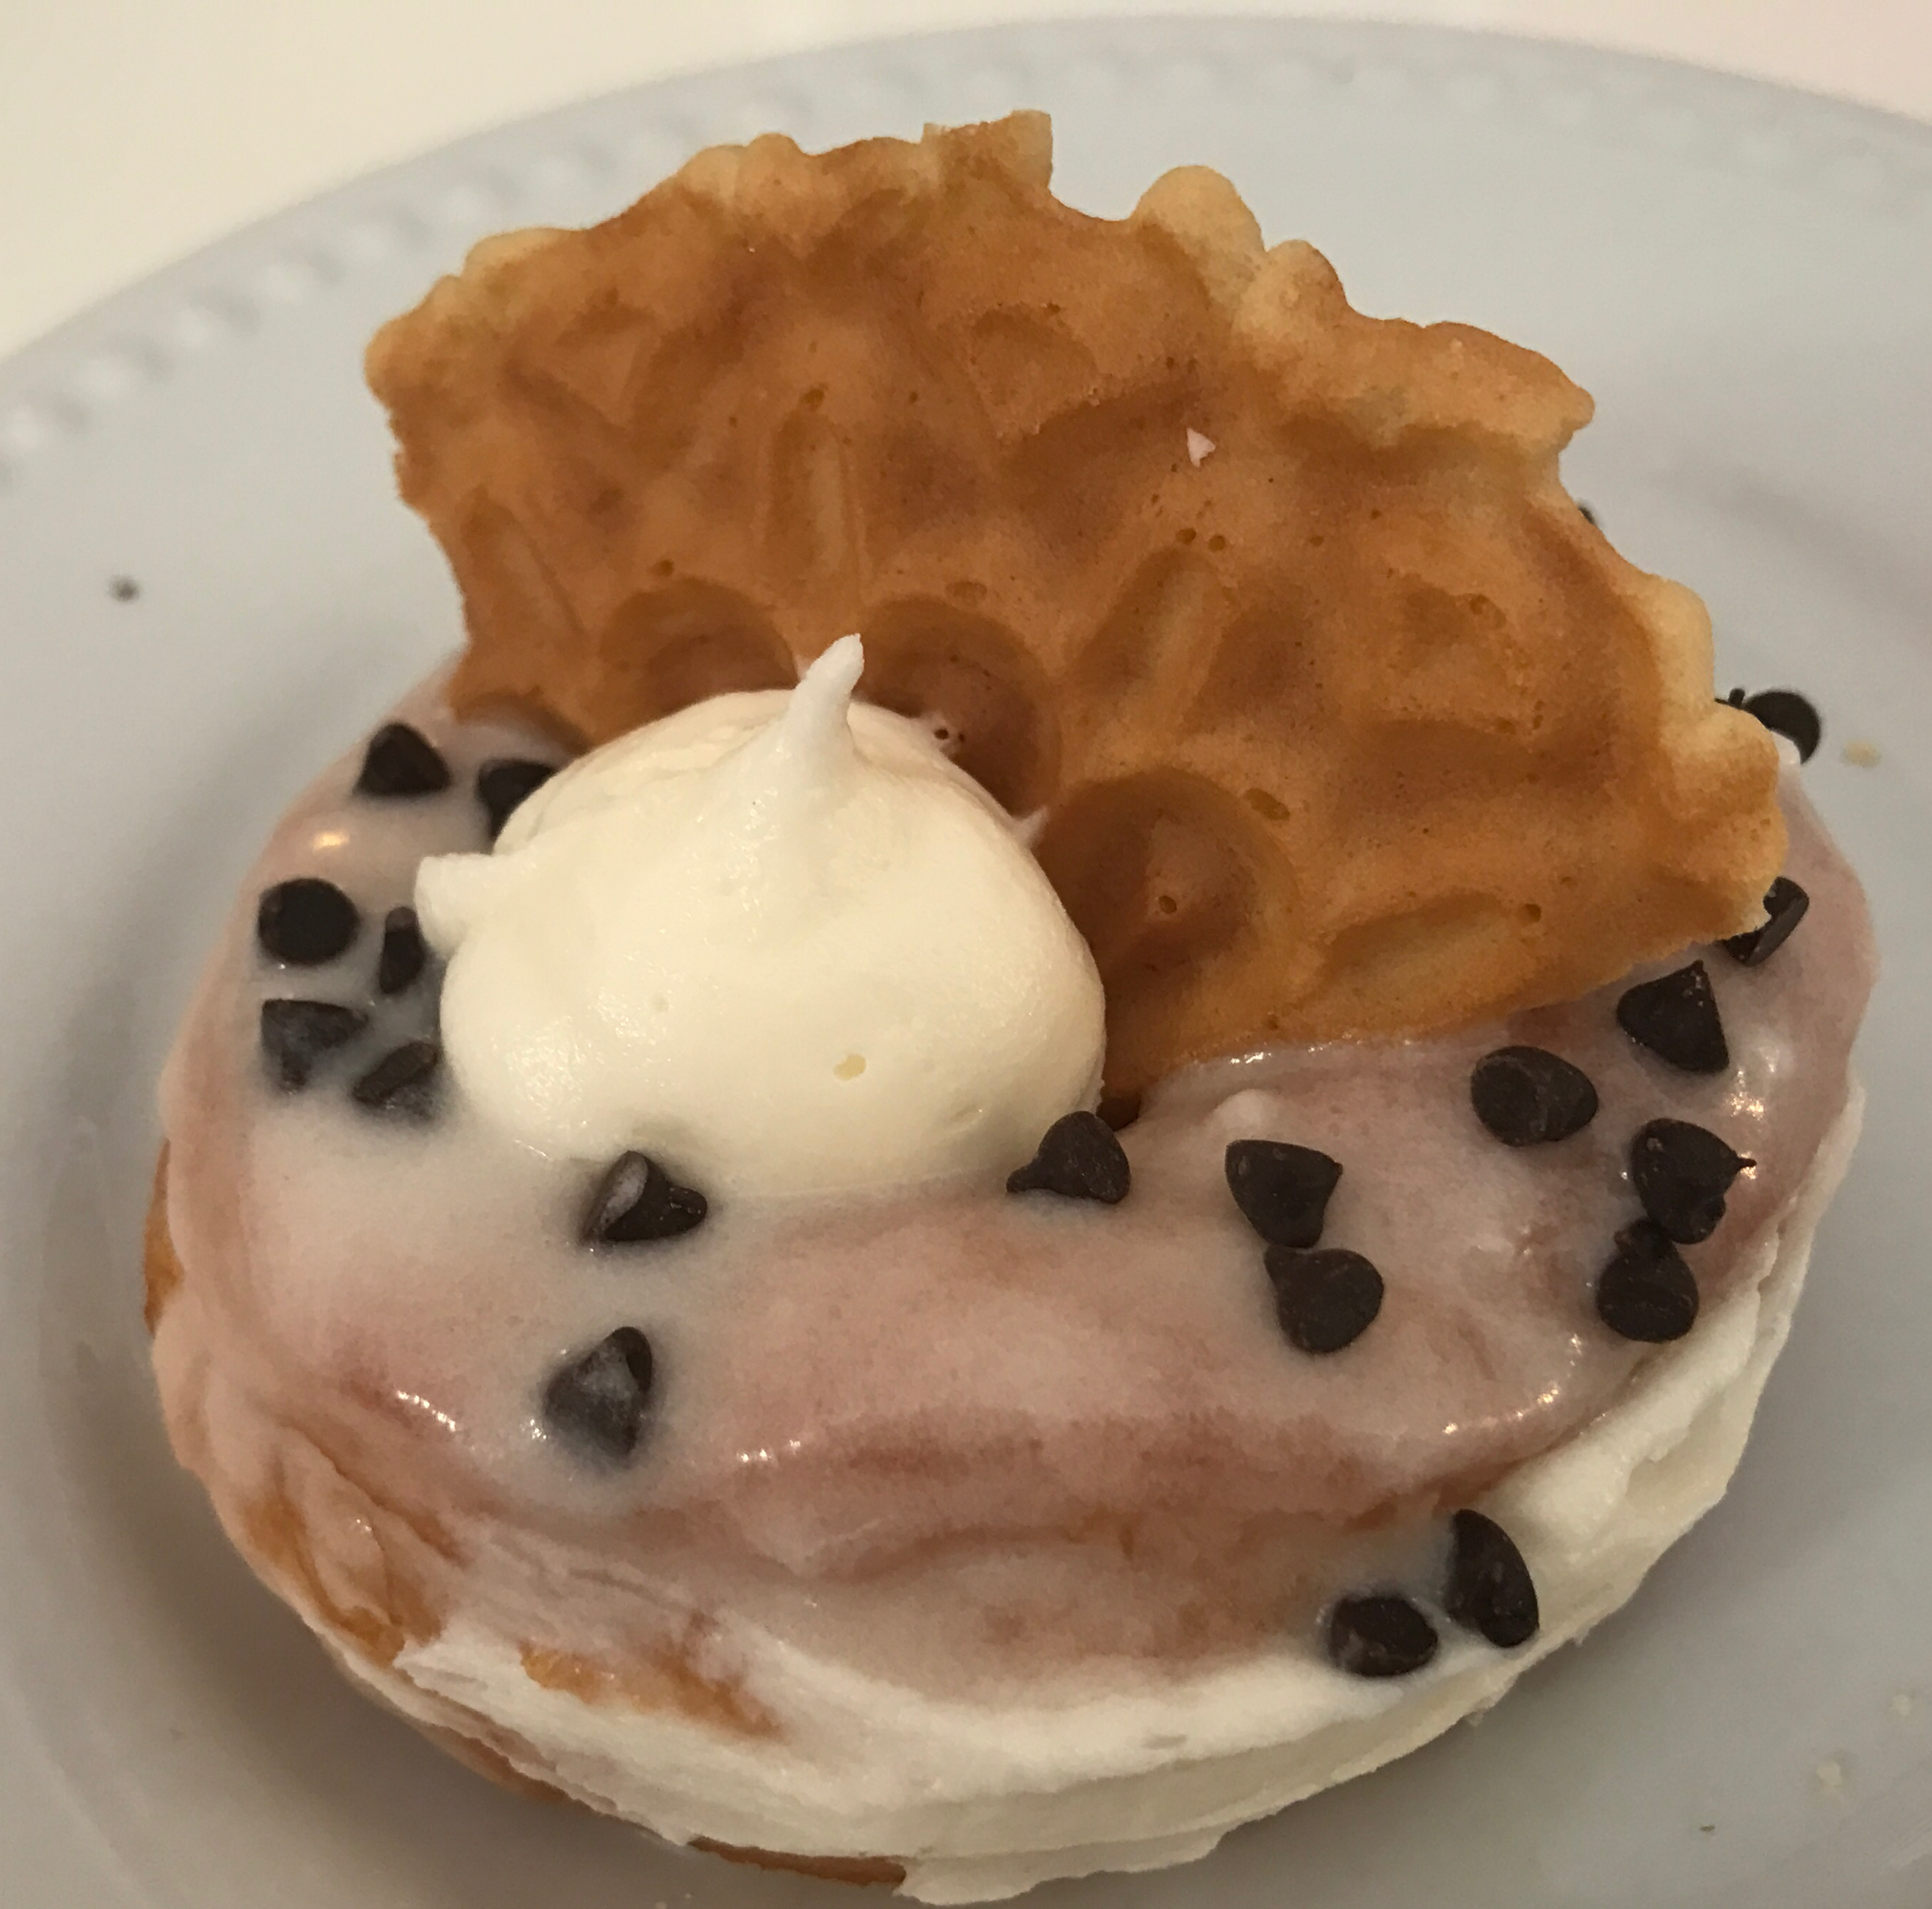 Cream Cheese Cannoli Fried Donut (12)